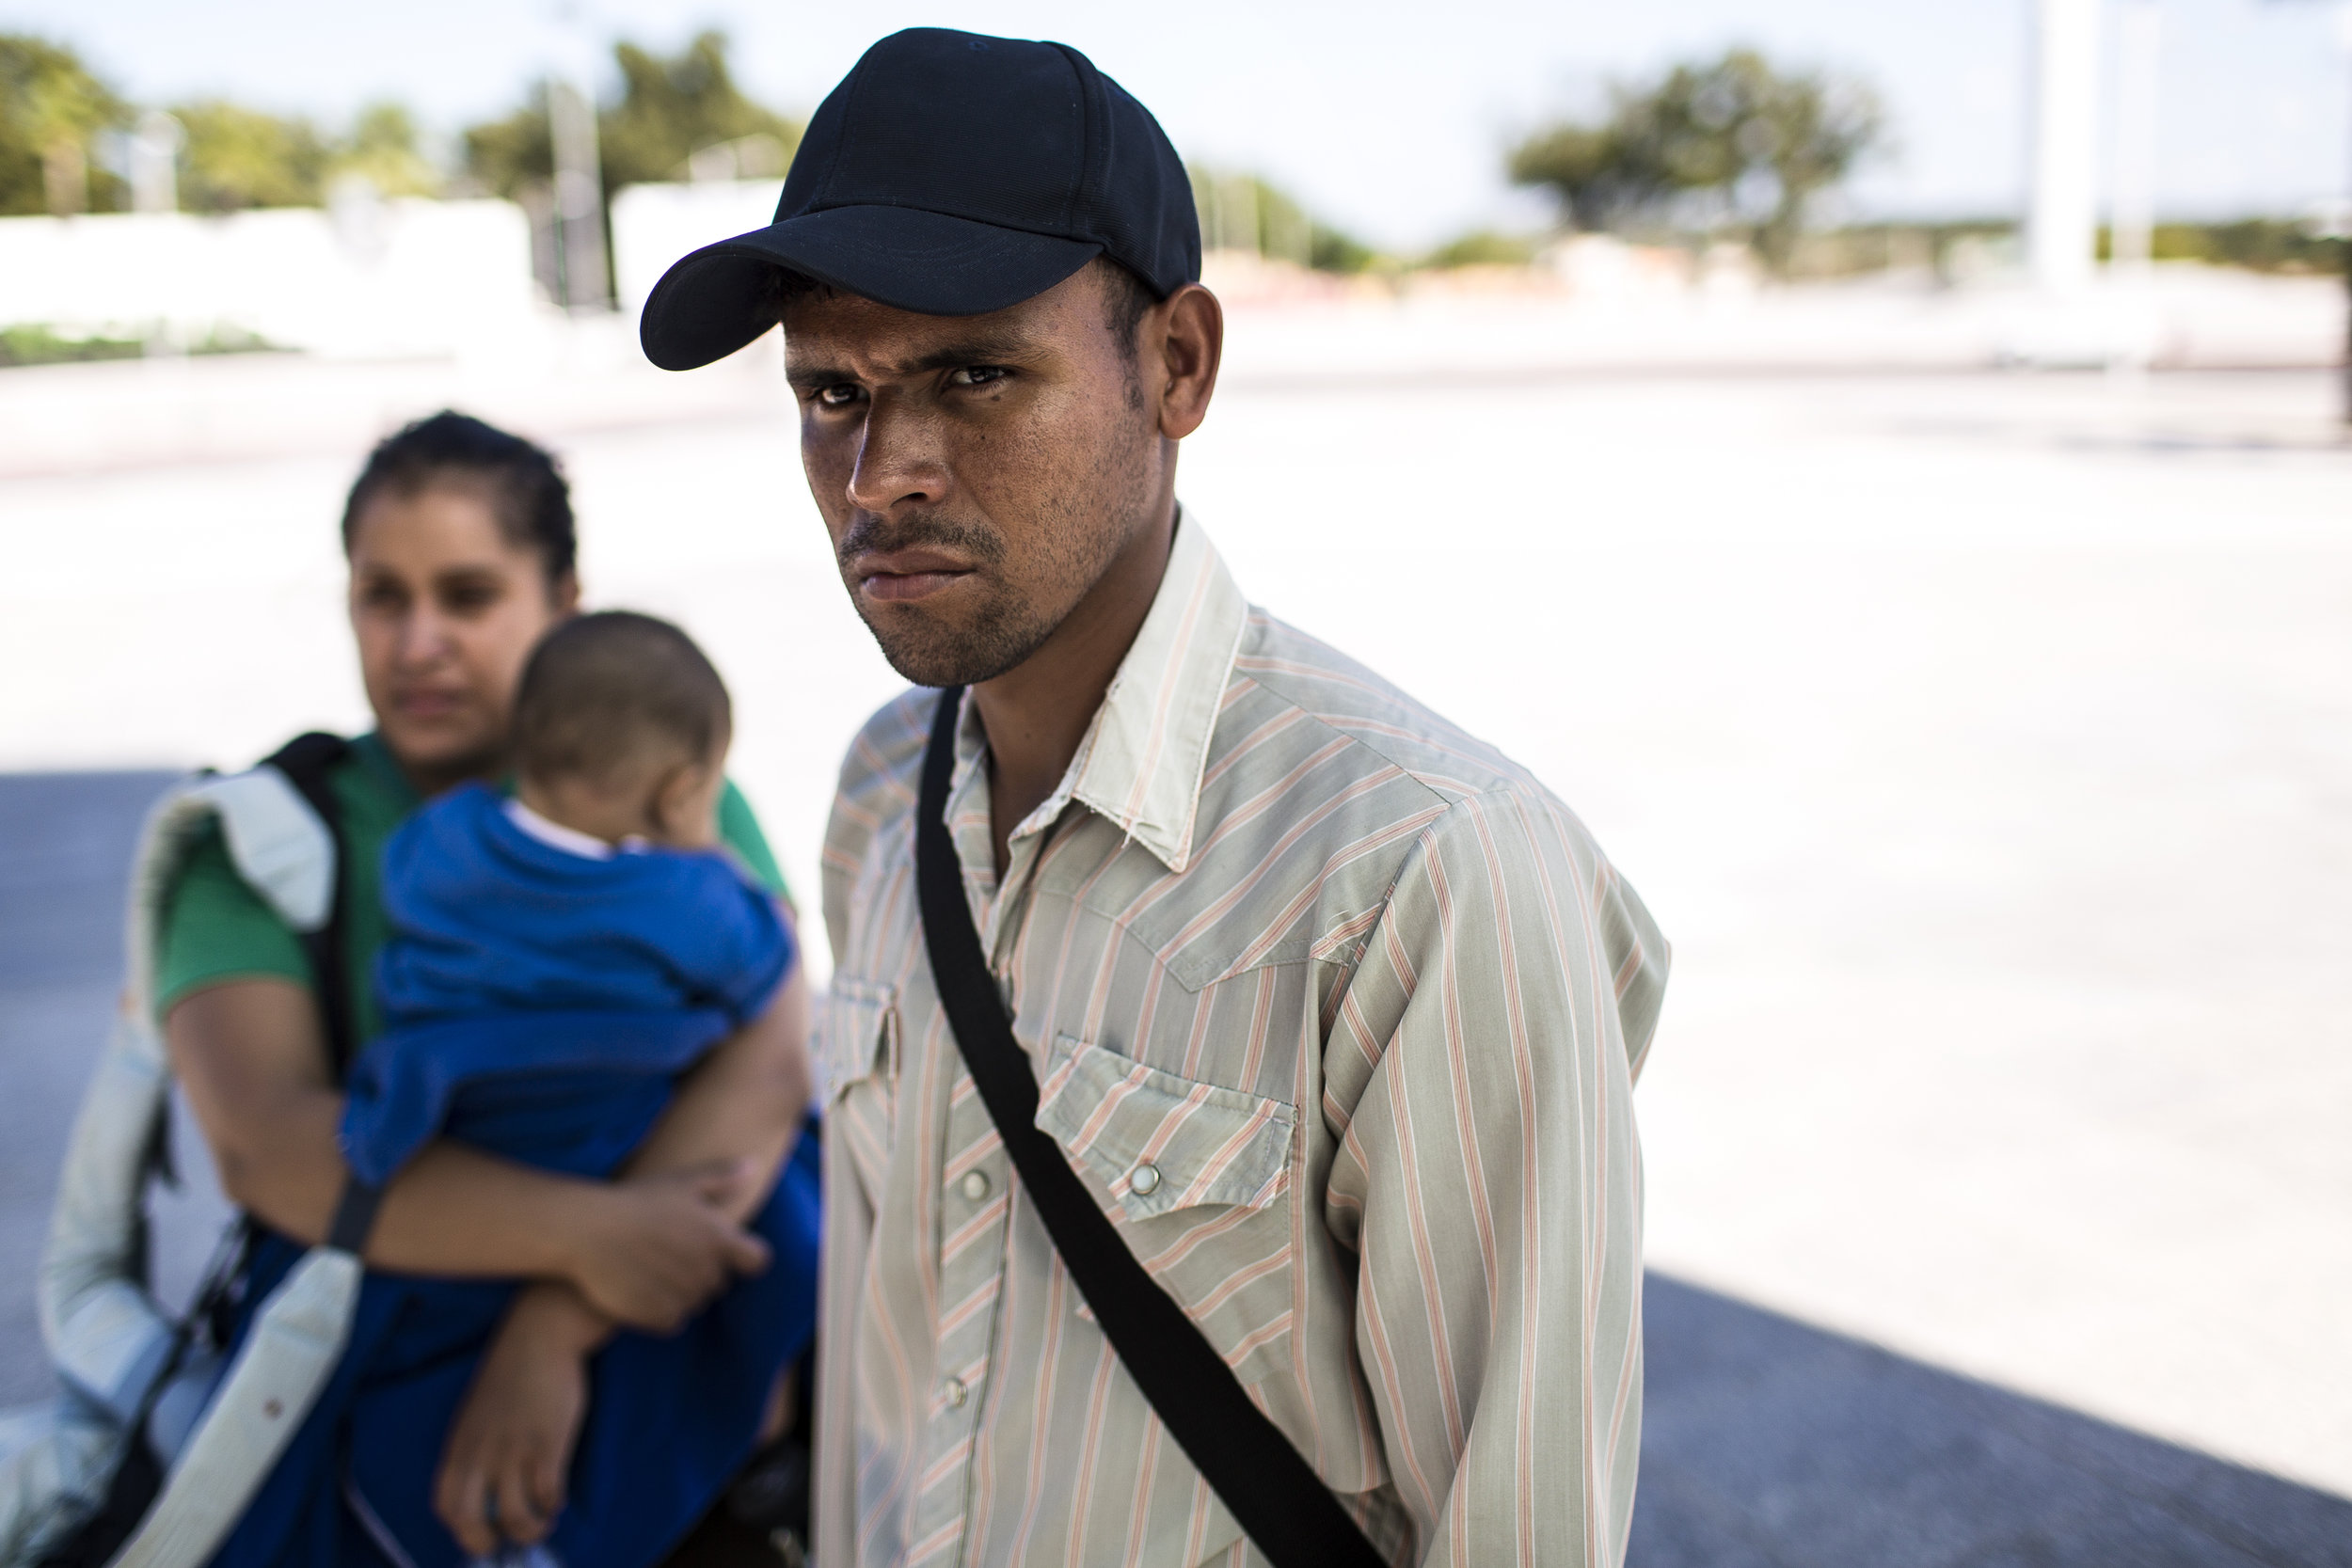 The Carias family leaves the US-Mexico border overlook in Piedras Negras, Mexico, after spotting a group of young men that make them uneasy. They have heard about individual migrants and also families being abducted and held for ransom and Dikeni was even kidnapped on an earlier trip to the United States. Photo by Martin do Nascimento